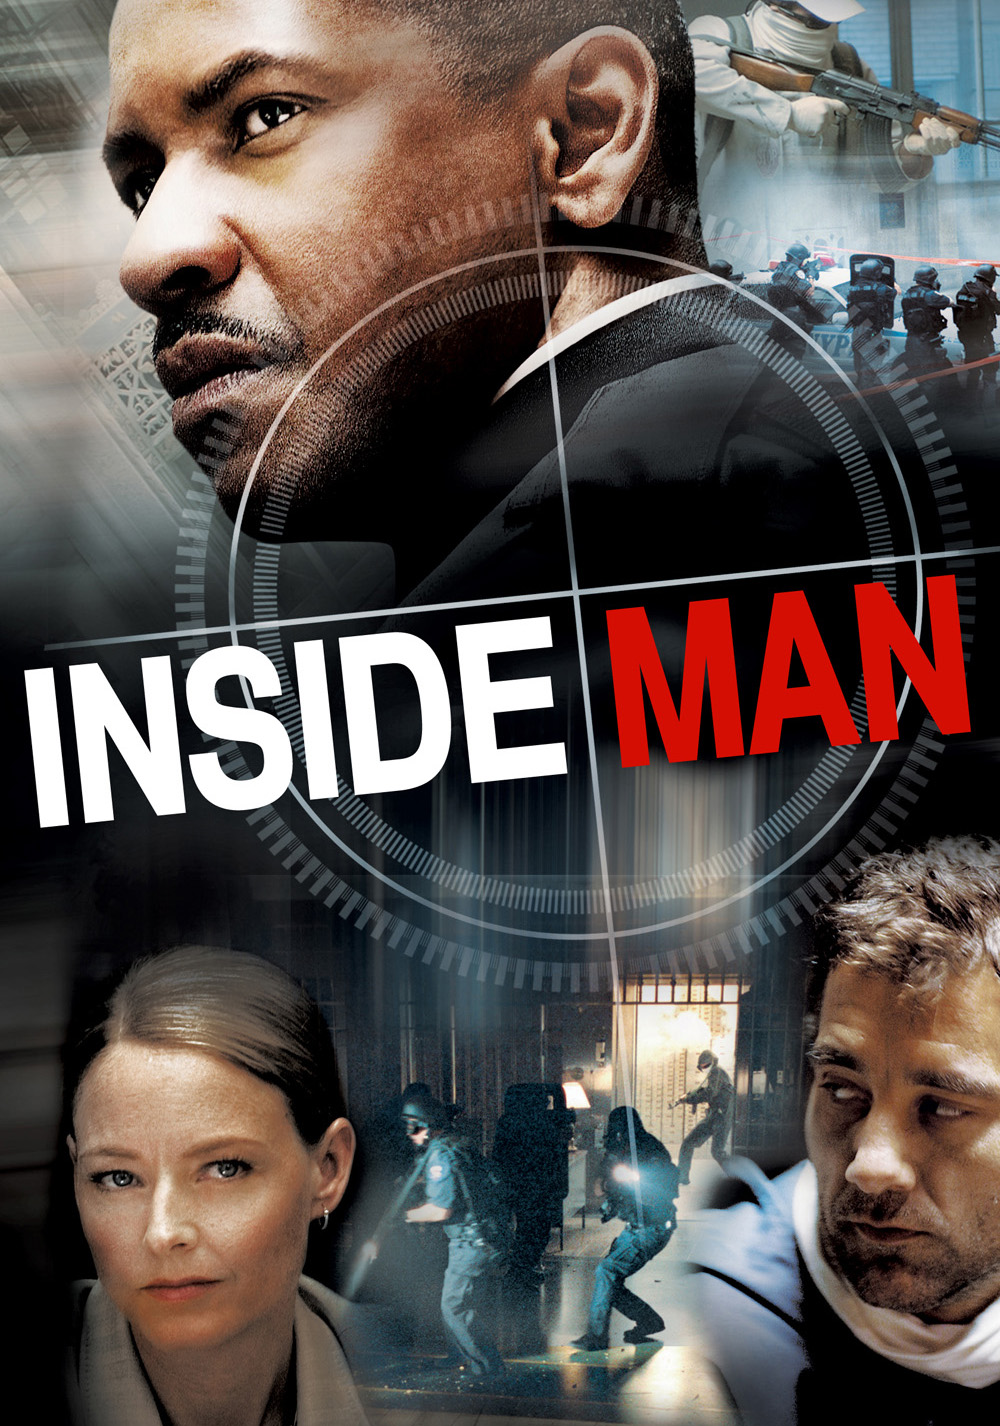 INSIDE MAN (2006) MOVIE TAMIL DUBBED HD